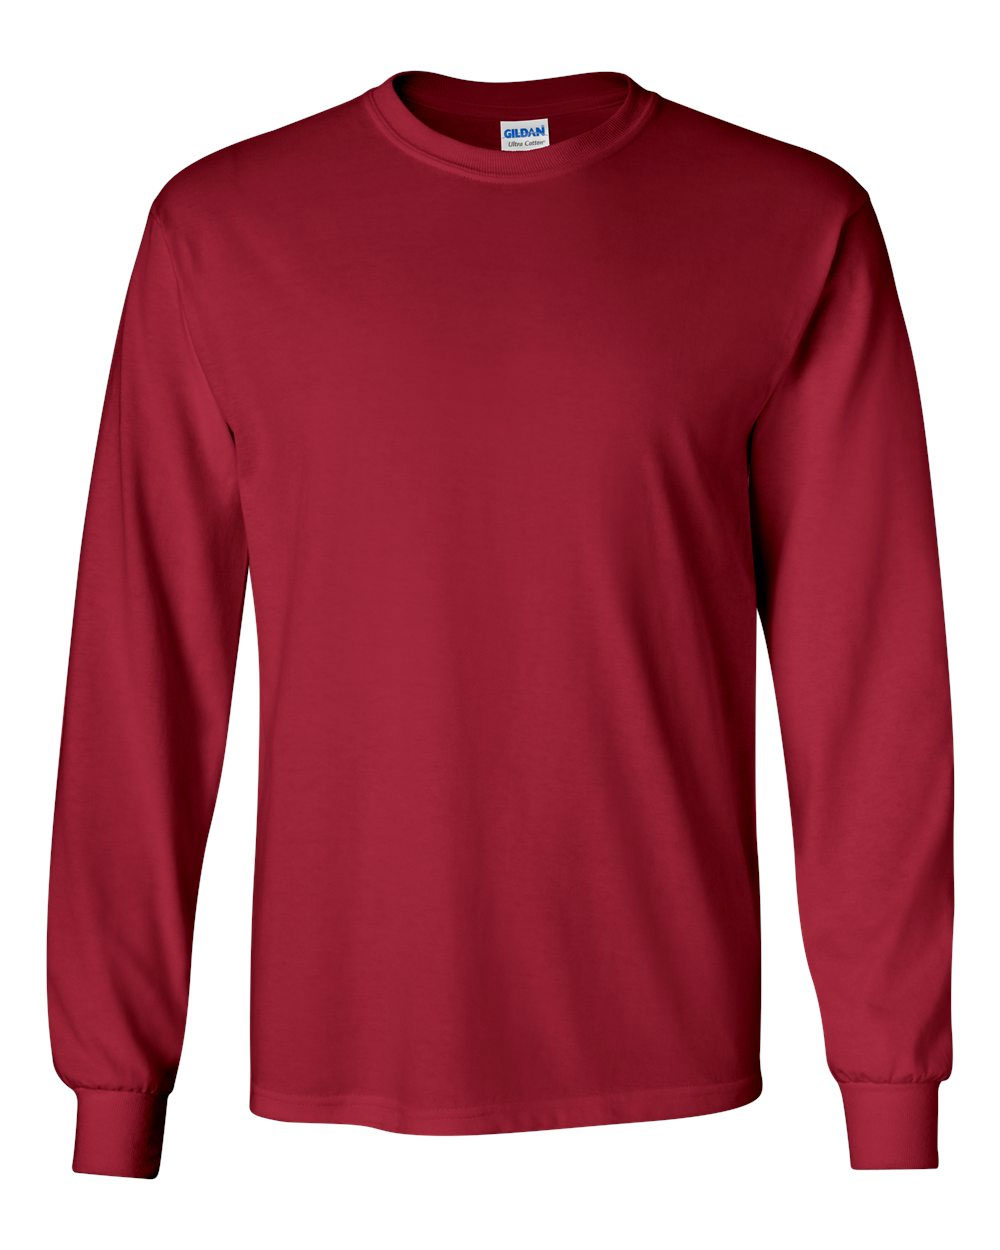 e51ed5bb9aea Gildan 100% Heavyweight Ultra Cotton Long Sleeve T-Shirt - Design Online or  Buy It Blank